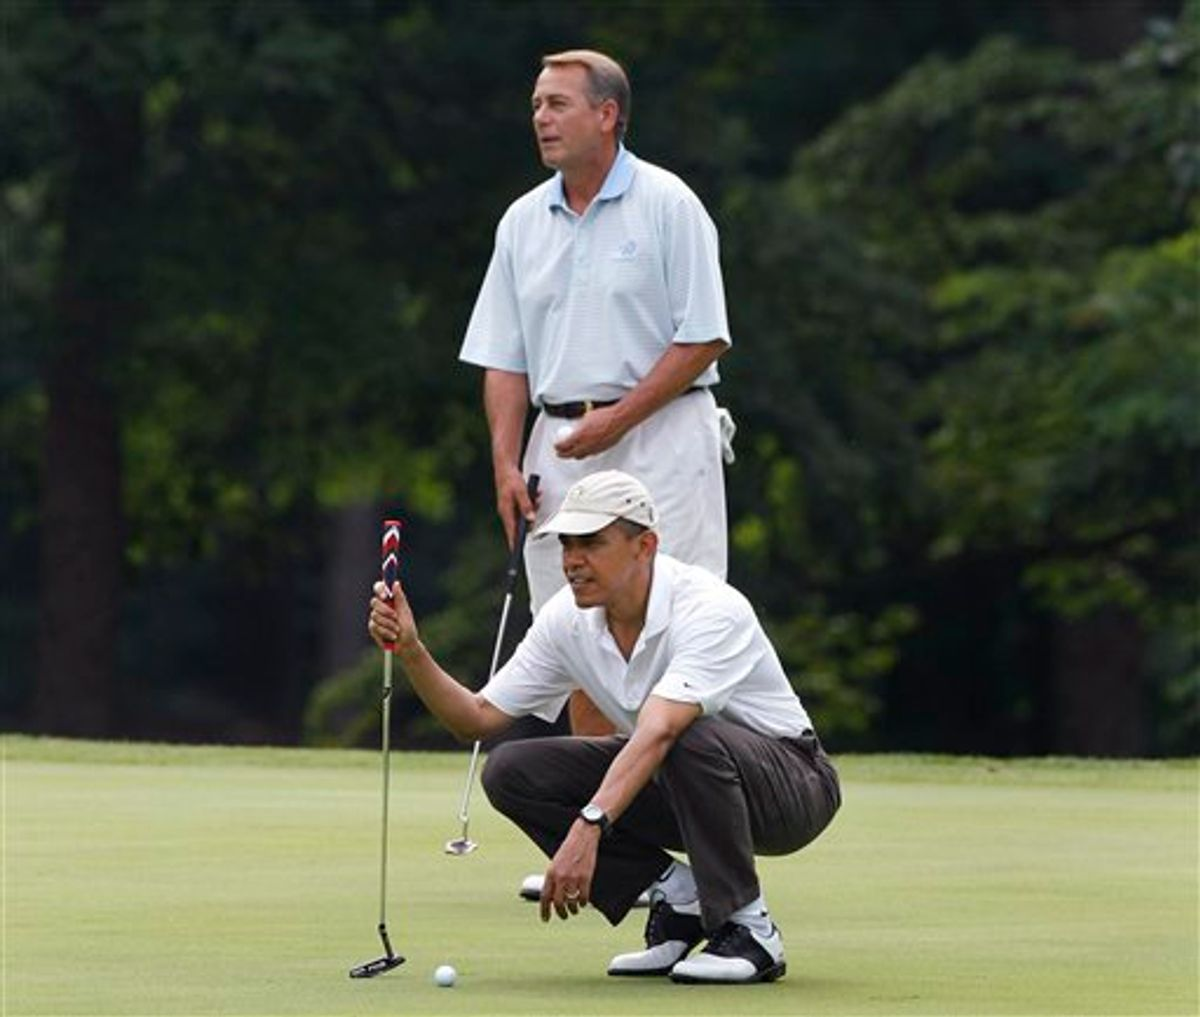 President Barack Obama and House Speaker John Boehner, R-Ohio, are on the first hole as they play golf at Andrews Air Force Base, Md.,  Saturday, June 18, 2011. (AP Photo/Charles Dharapak) (AP)